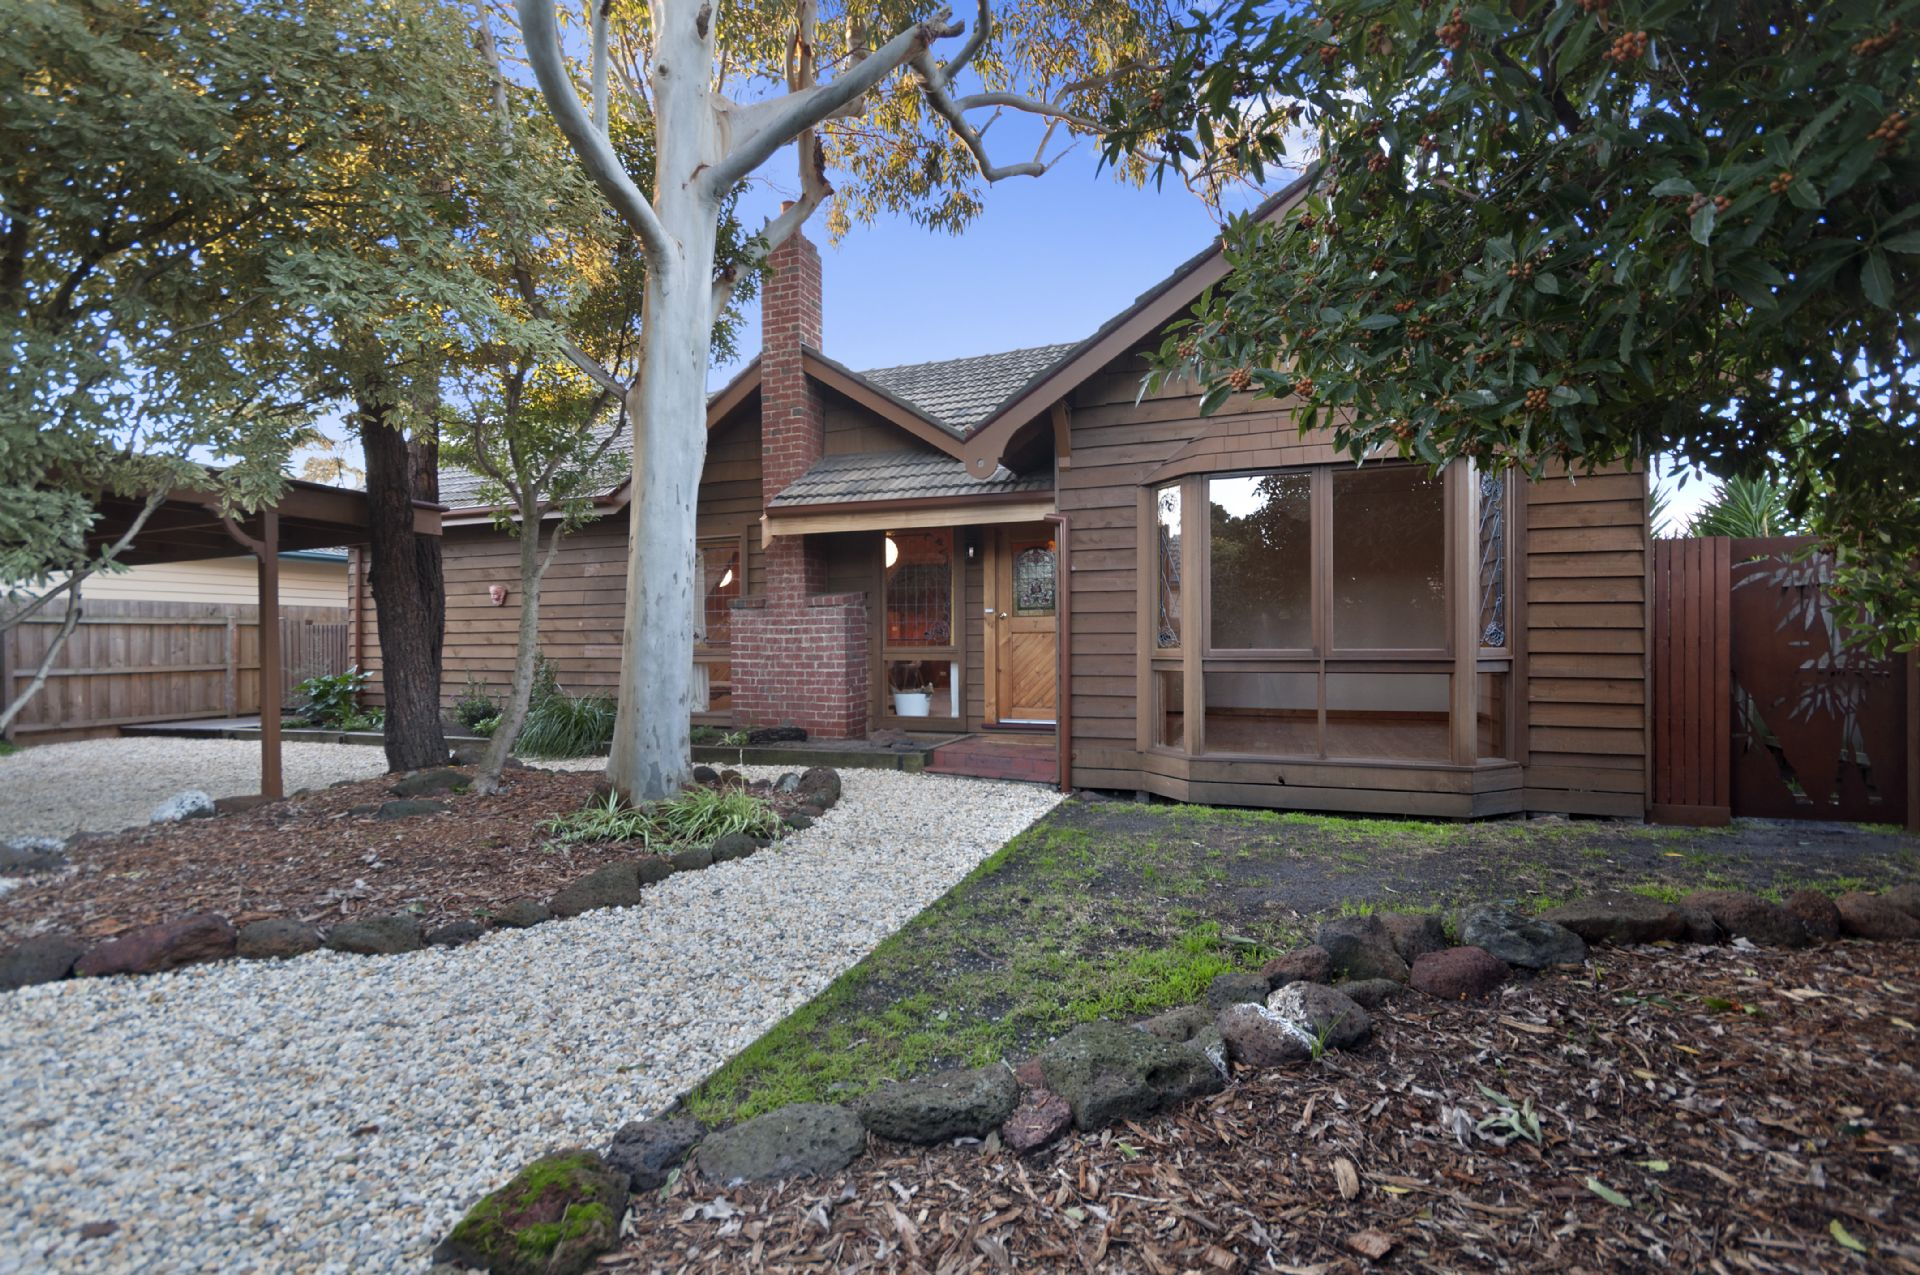 7 Cricklewood Avenue, FRANKSTON, VIC, 3199 - Image